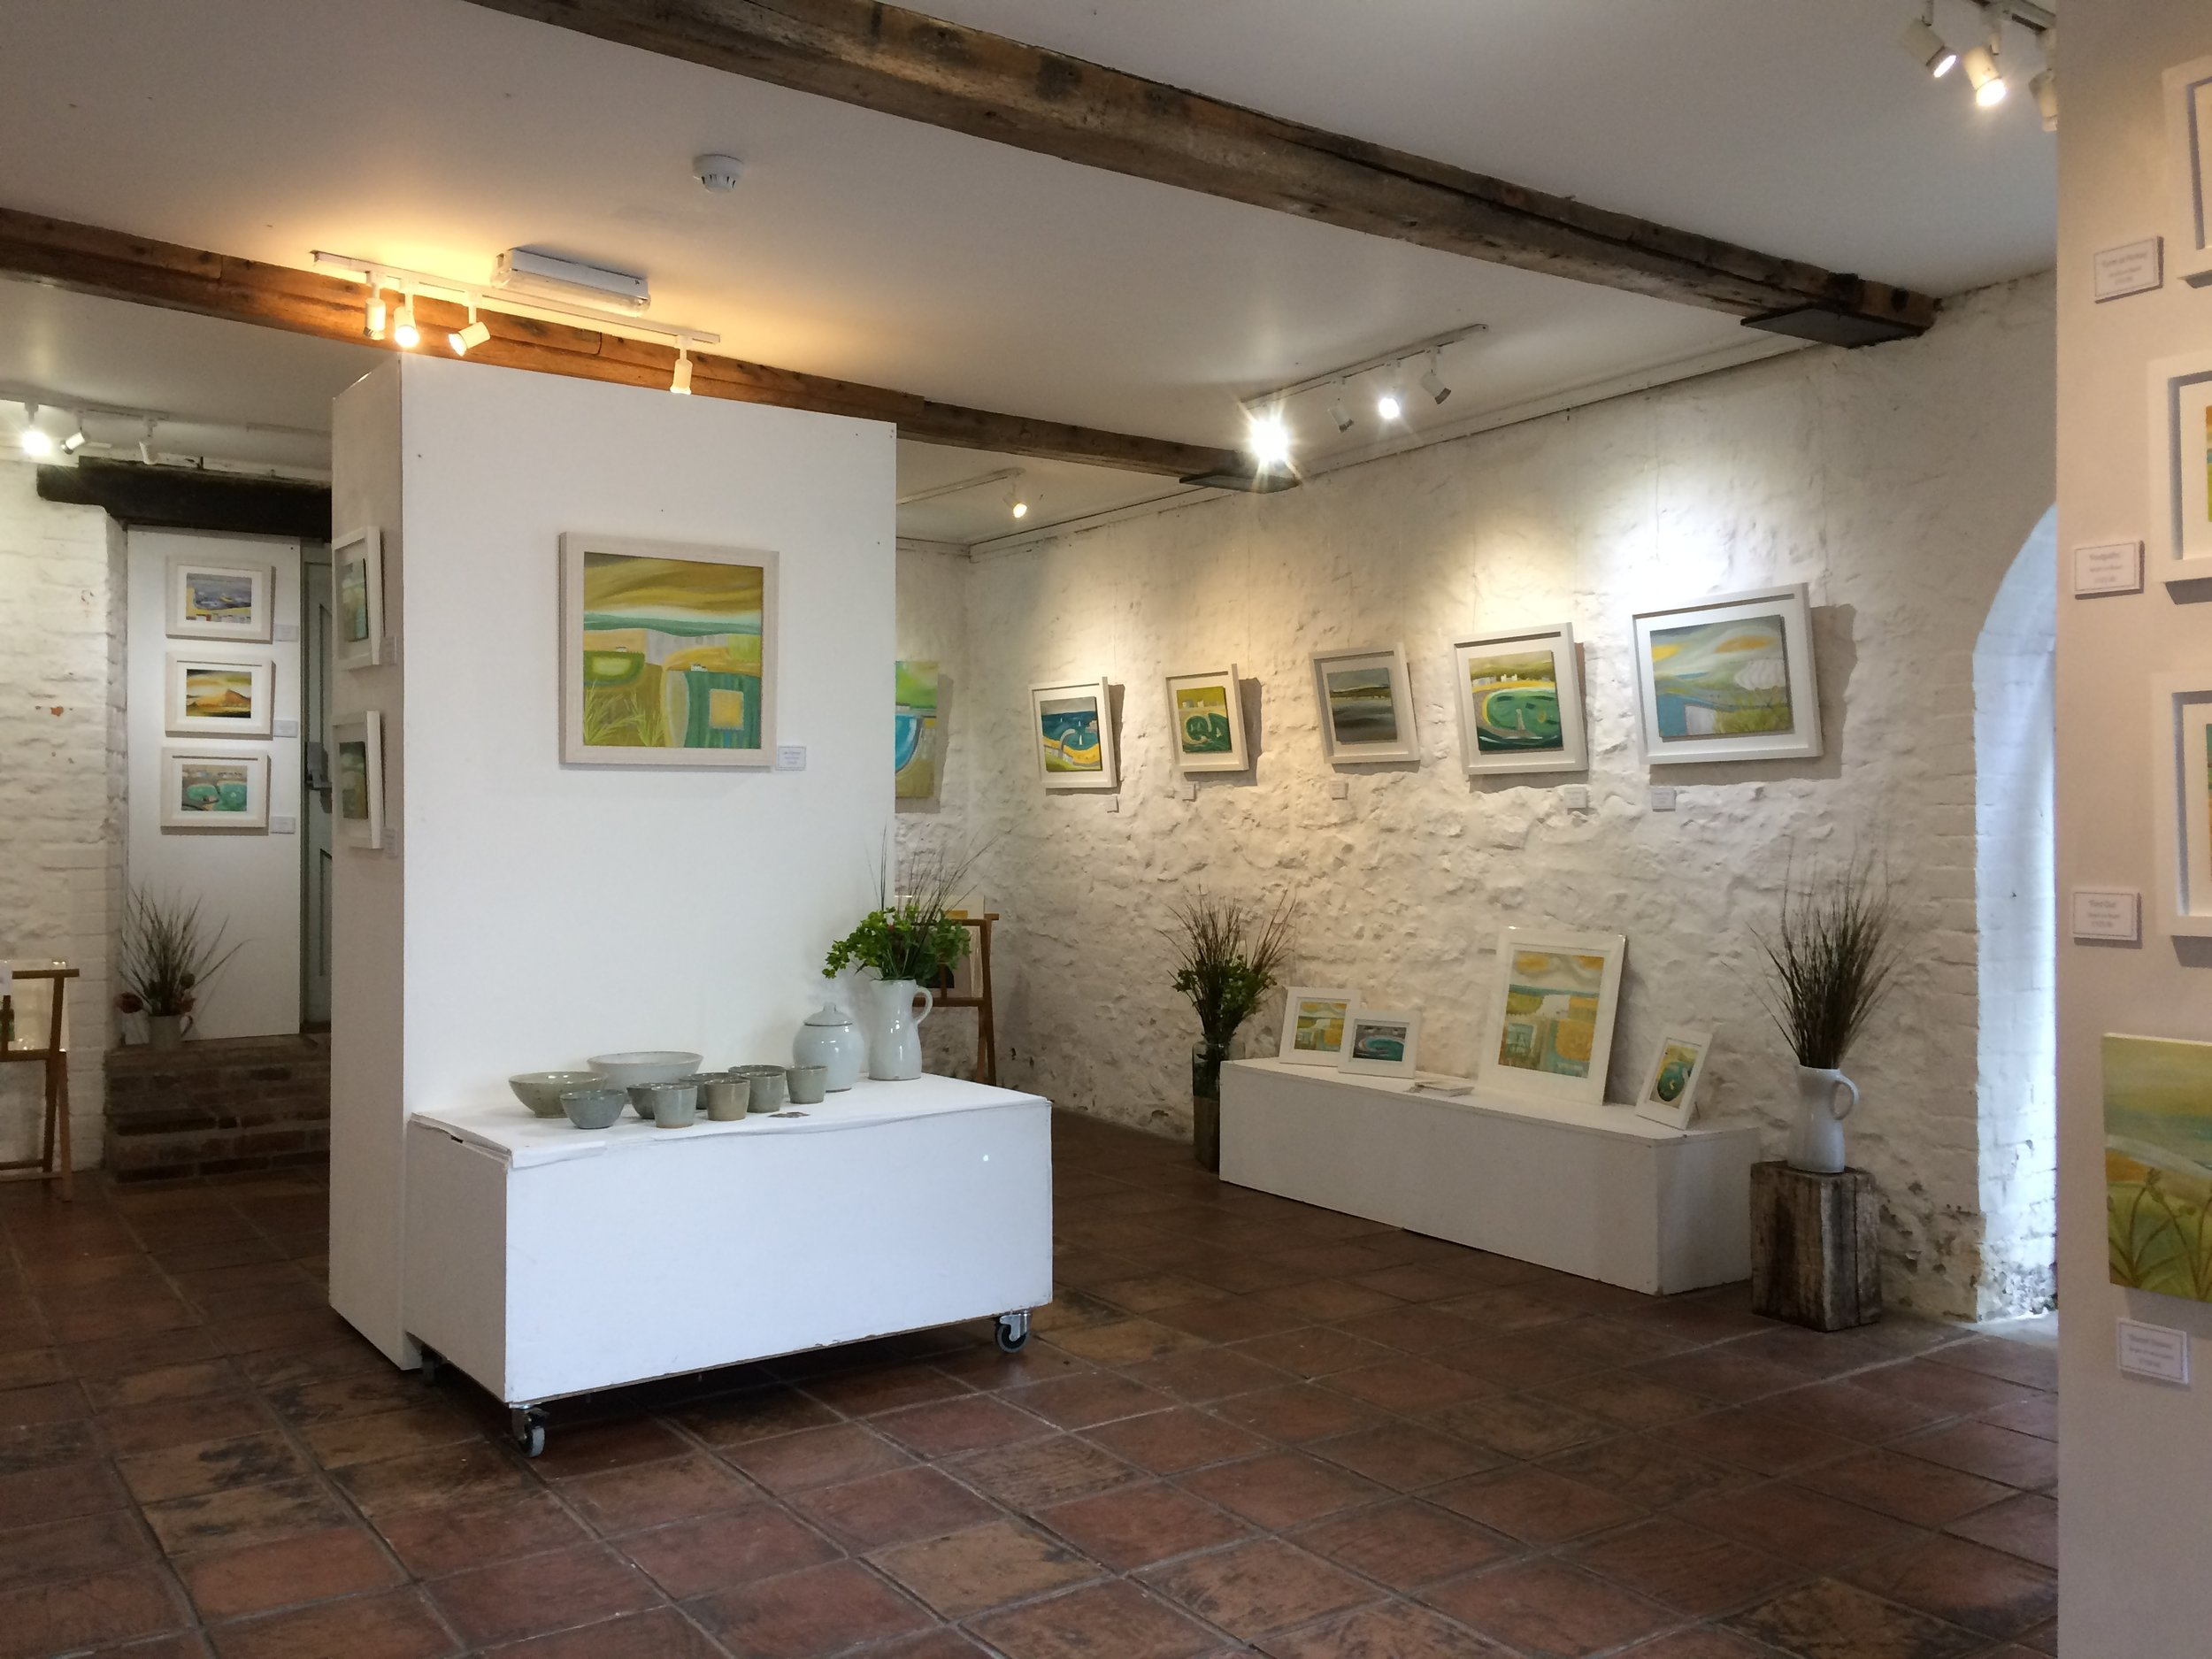 Exhibition at Town Mill Arts, Lyme Regis, May 2017